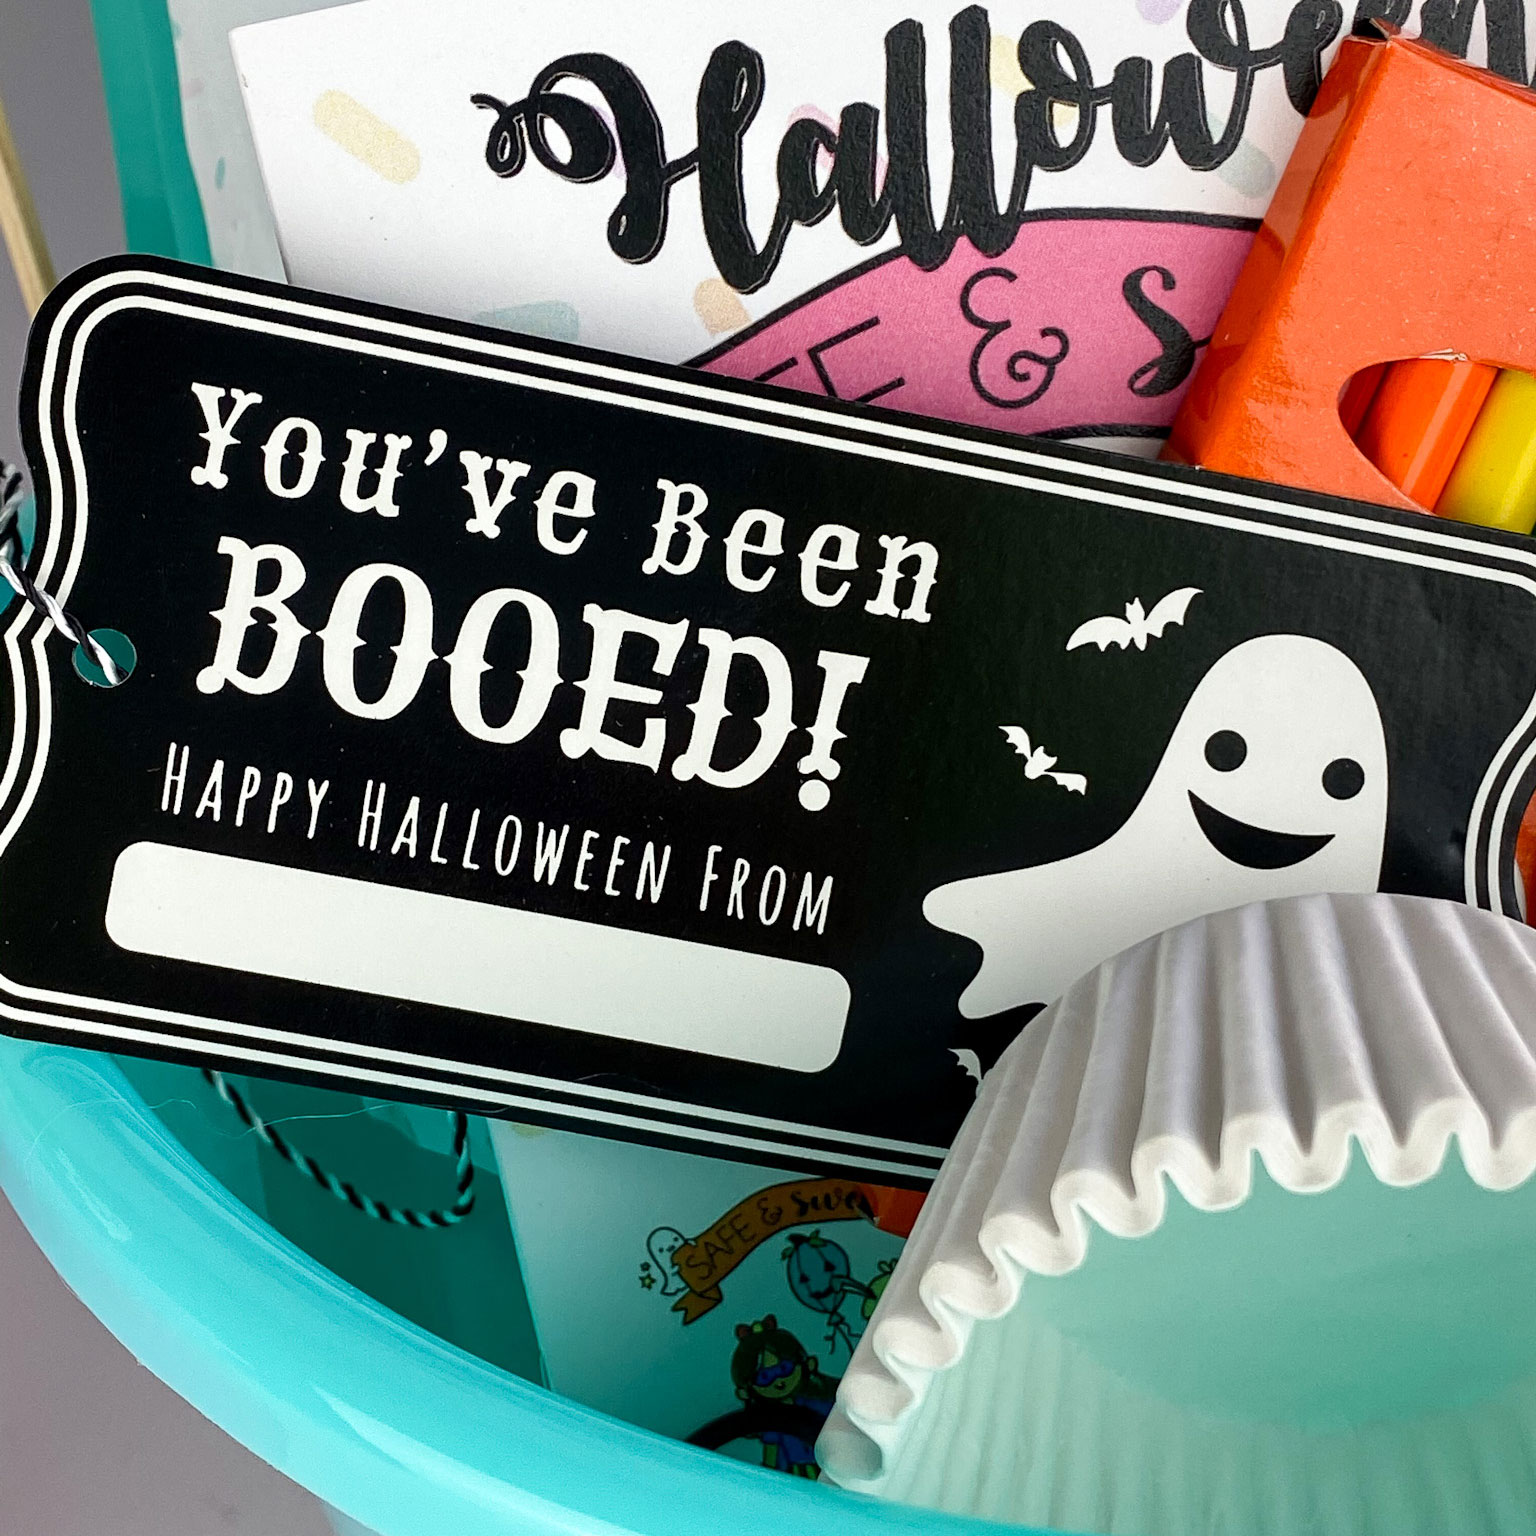 Kate's-Safe-and-Sweet---Halloween-Boo-Basket---You've-Been-Booed